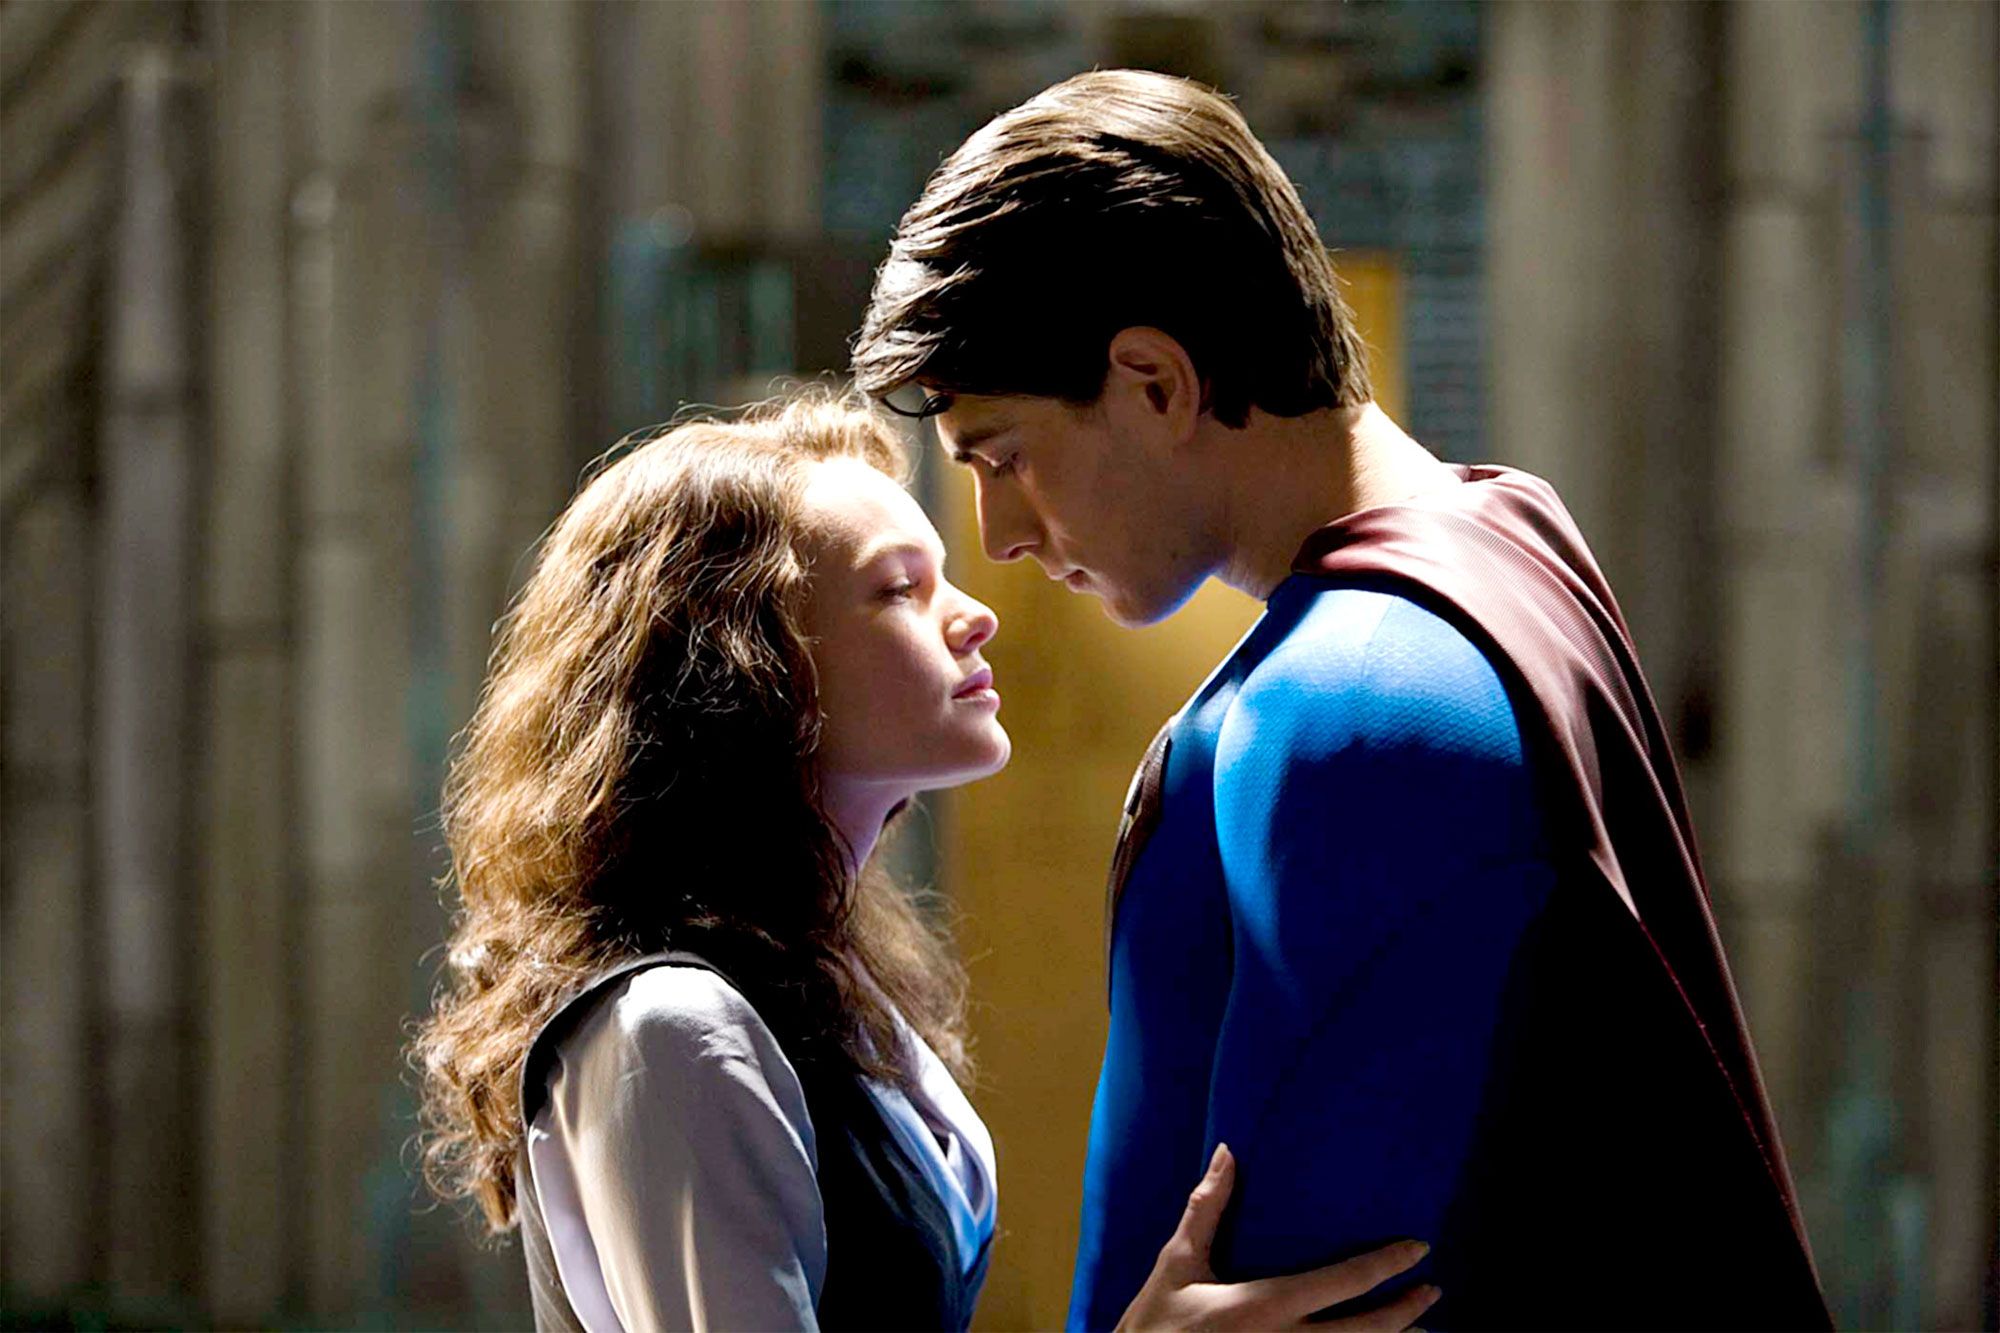 SUPERMAN RETURNS, Kate Bosworth, Brandon Routh, 2006, (c) Warner Brothers/courtesy Everett Collectio